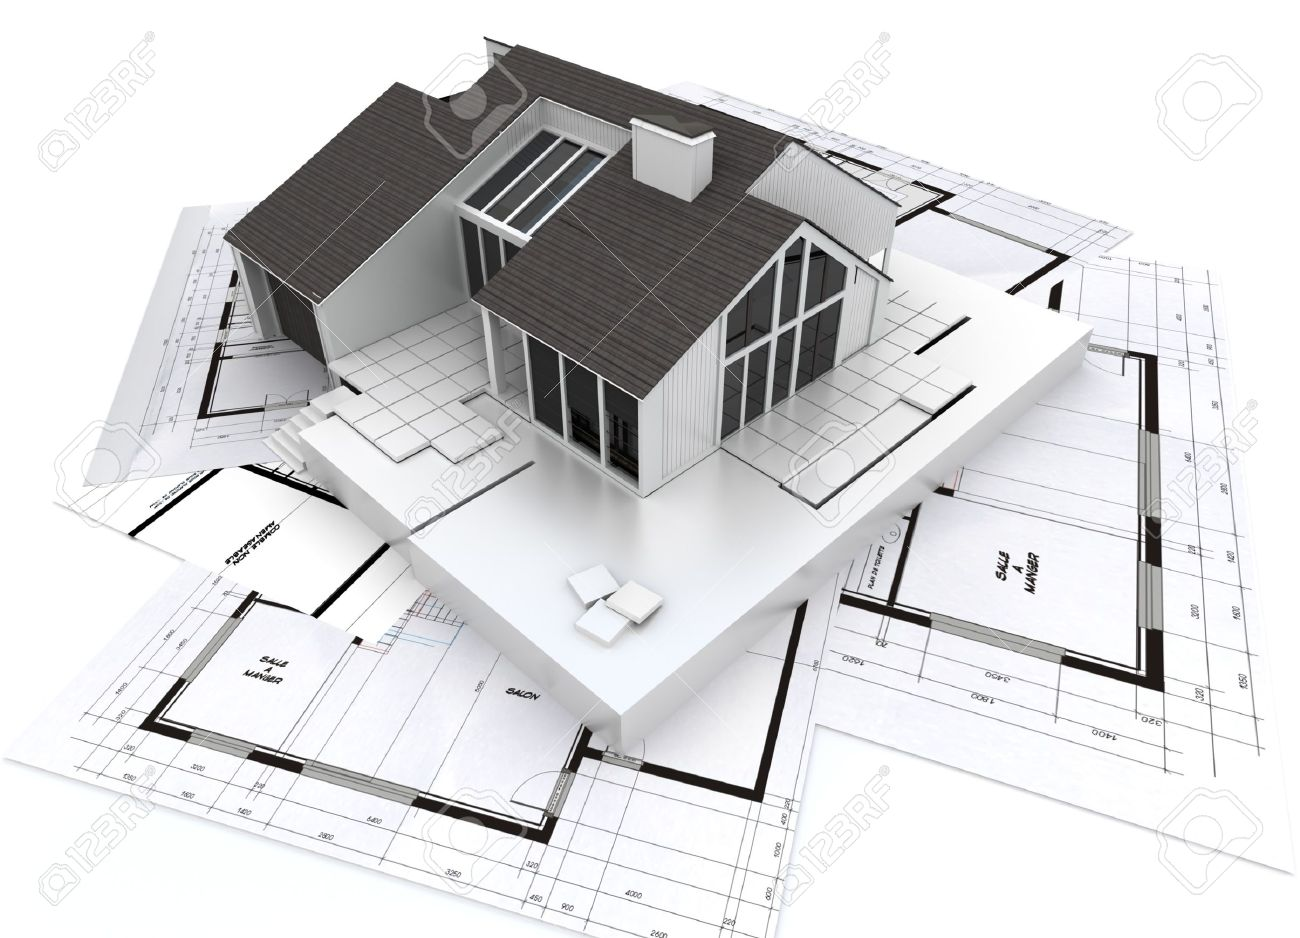 Architecture Blueprints 3d 3d rendering of a residential architecture model on top of